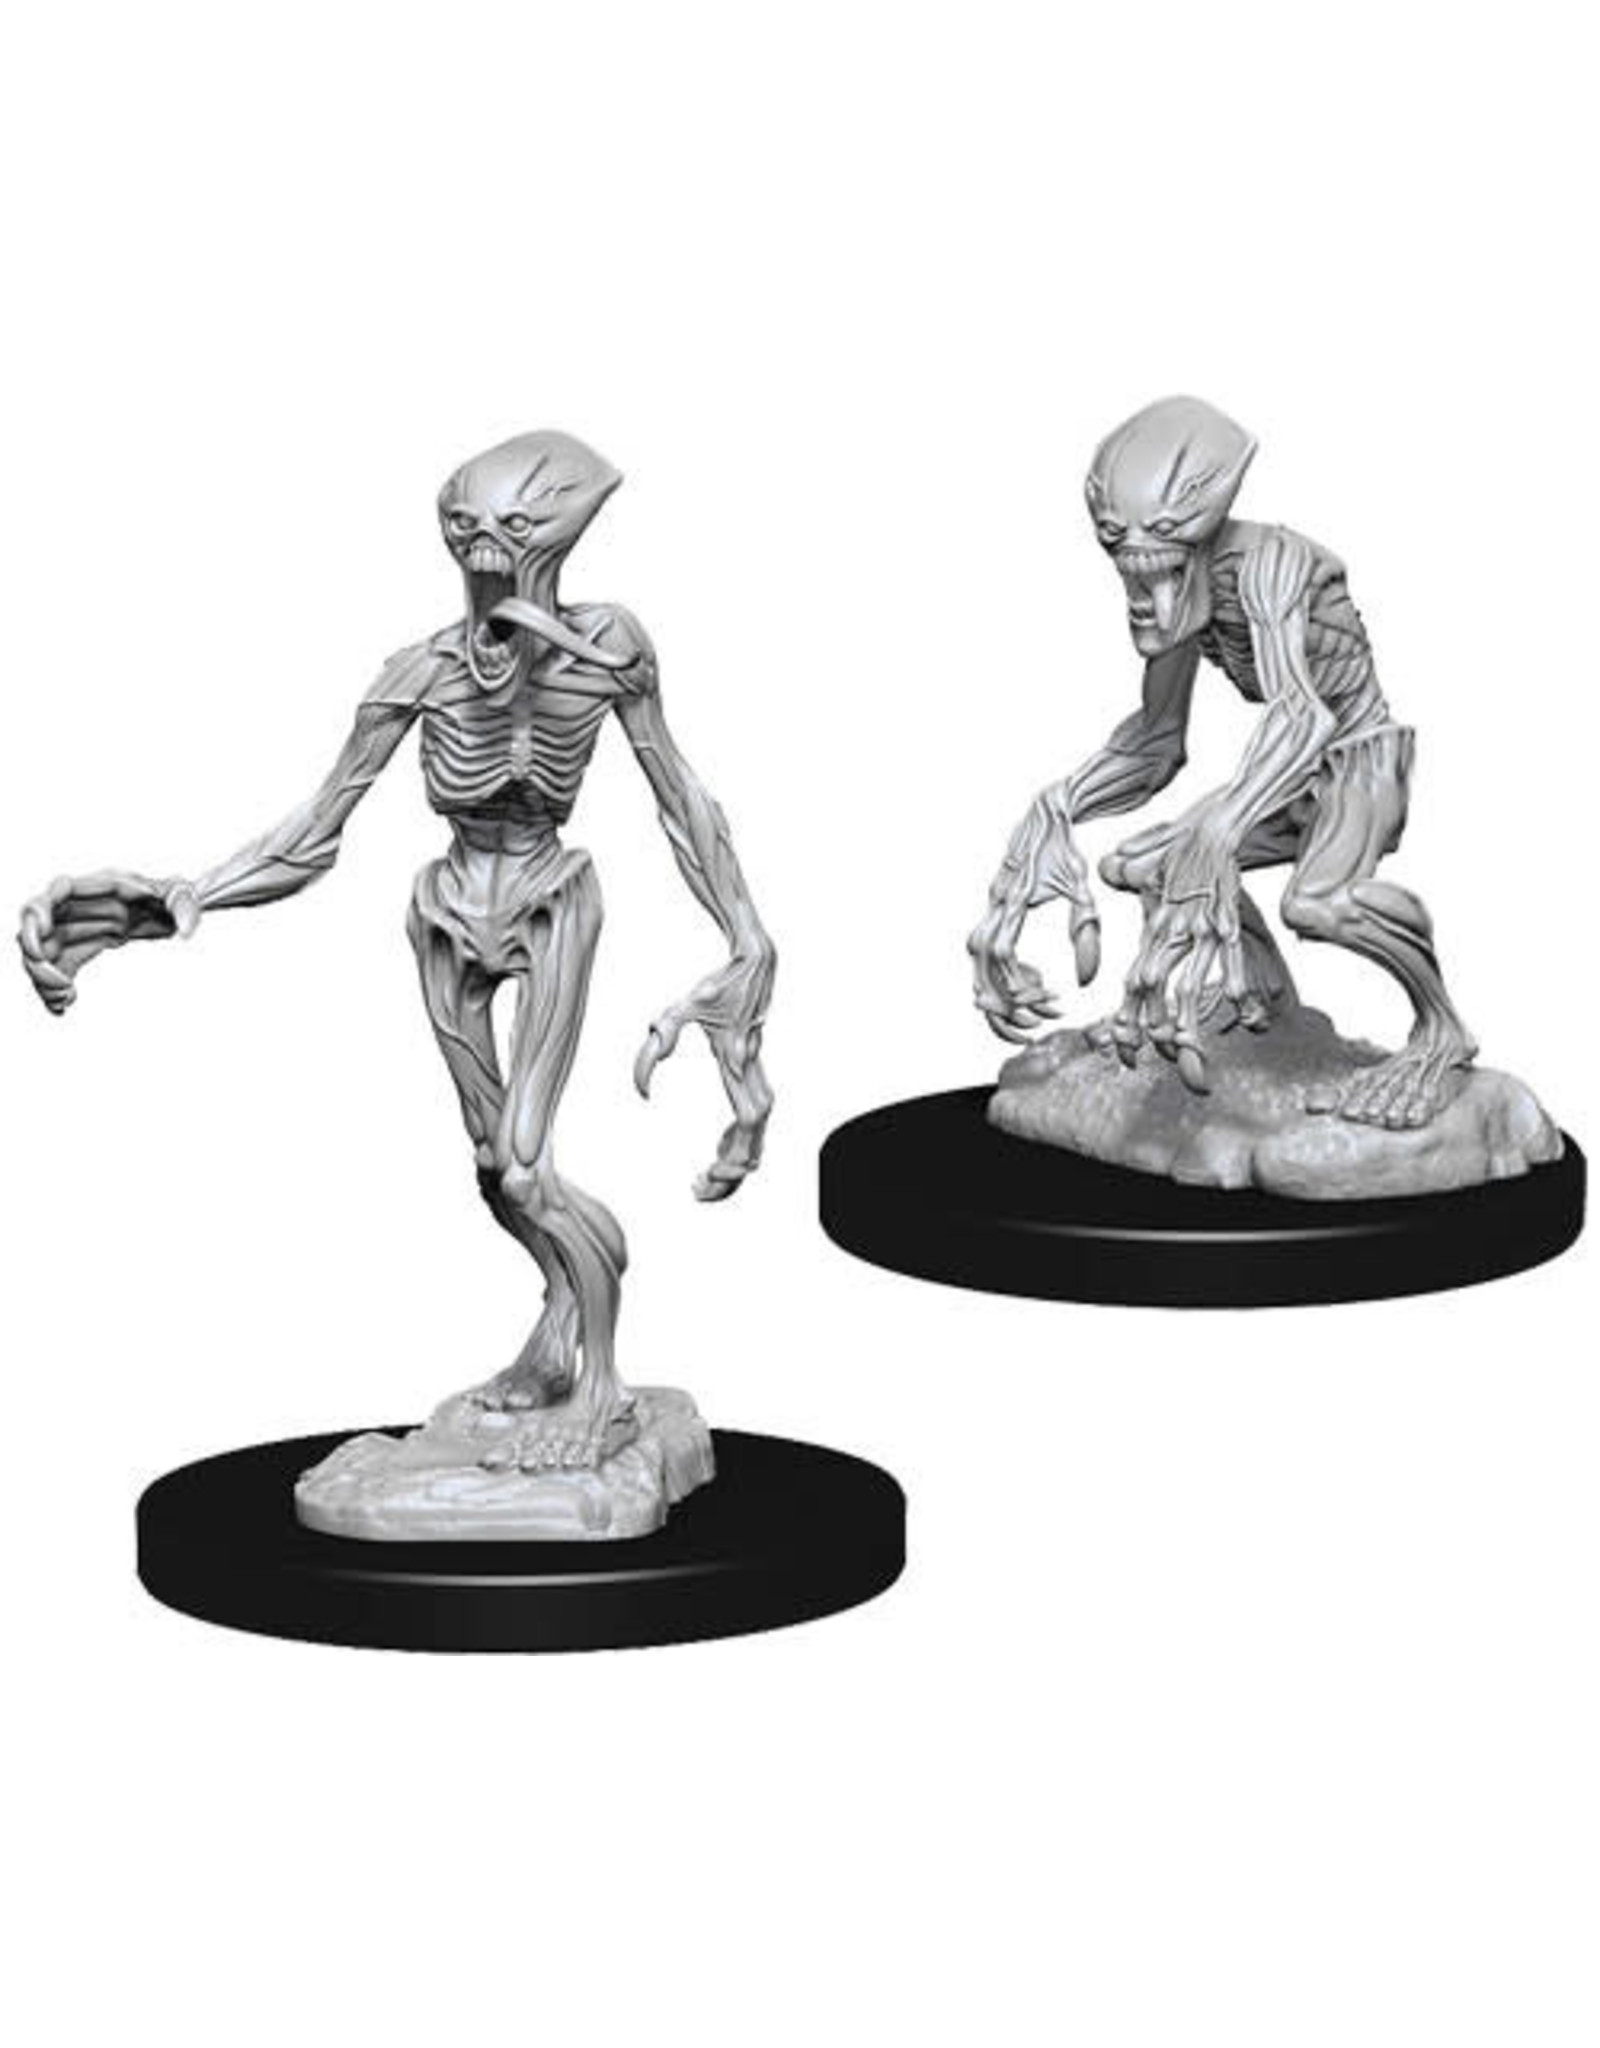 WIZKIDS DEEP CUTS PATHFINDER BATTLES DOPPELGANGERS UNPAINTED MINI